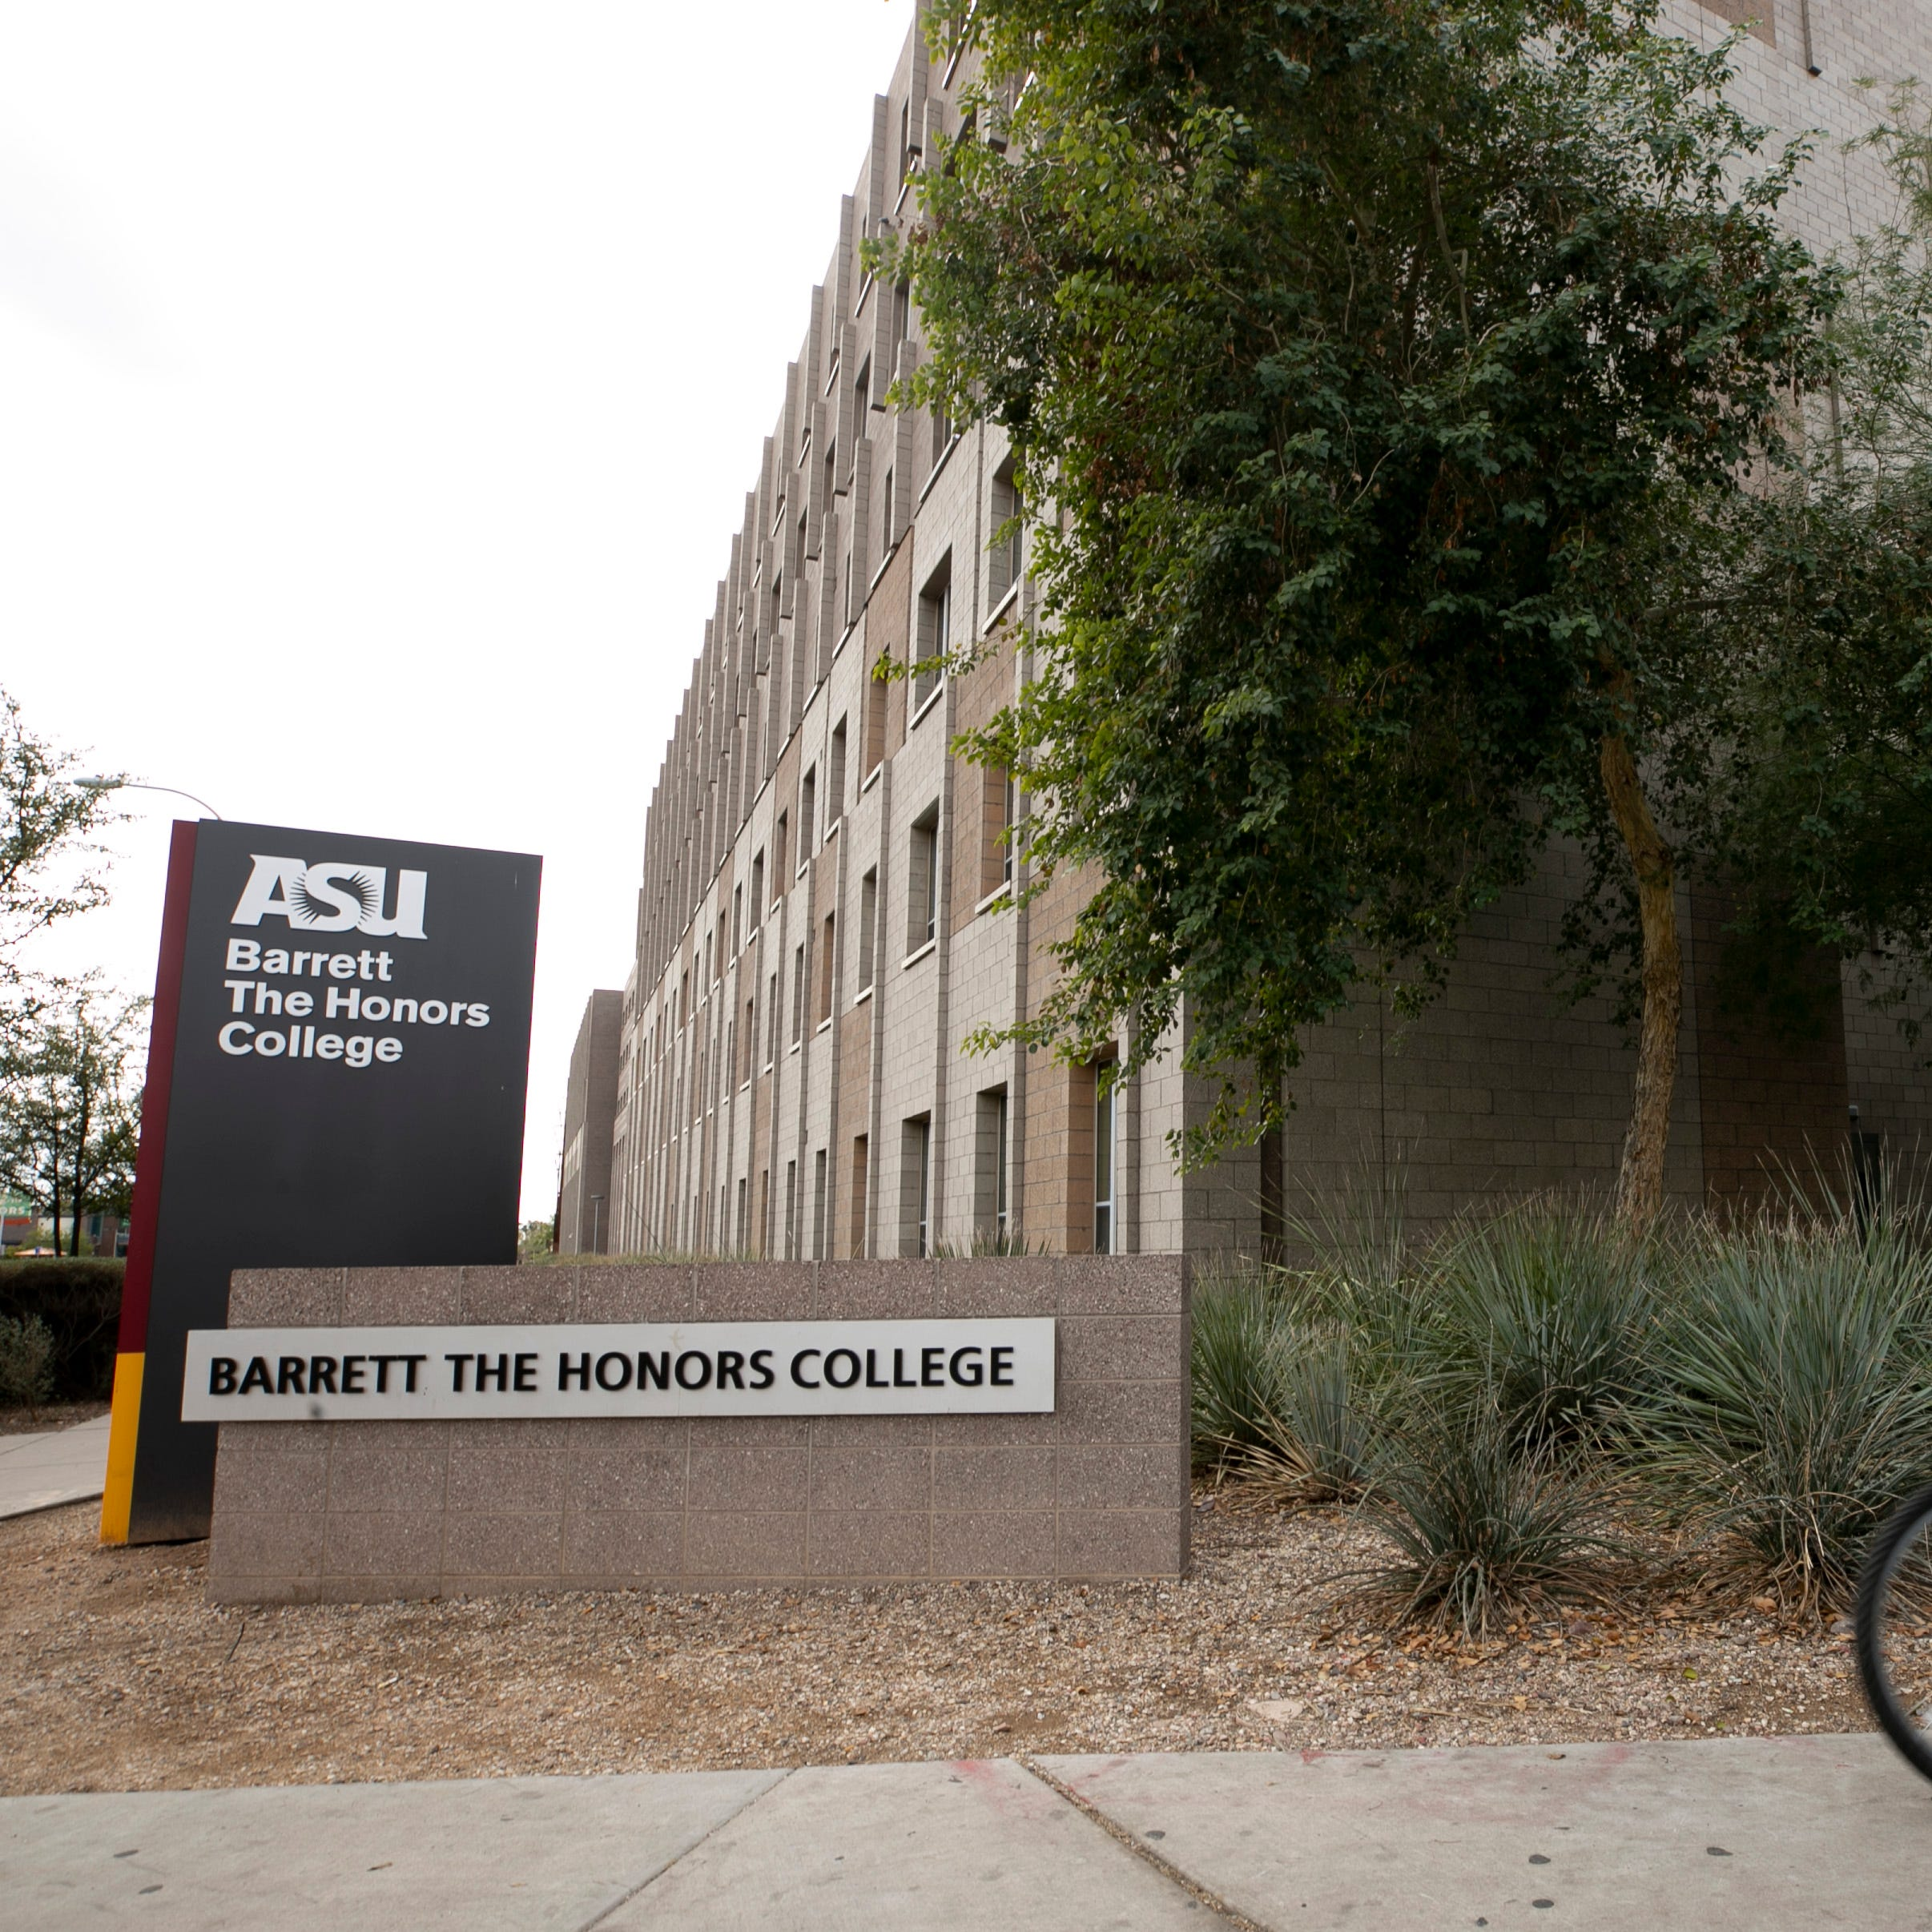 ASU wants to increase fees for its honors students, and some wonder if it's worth the cost